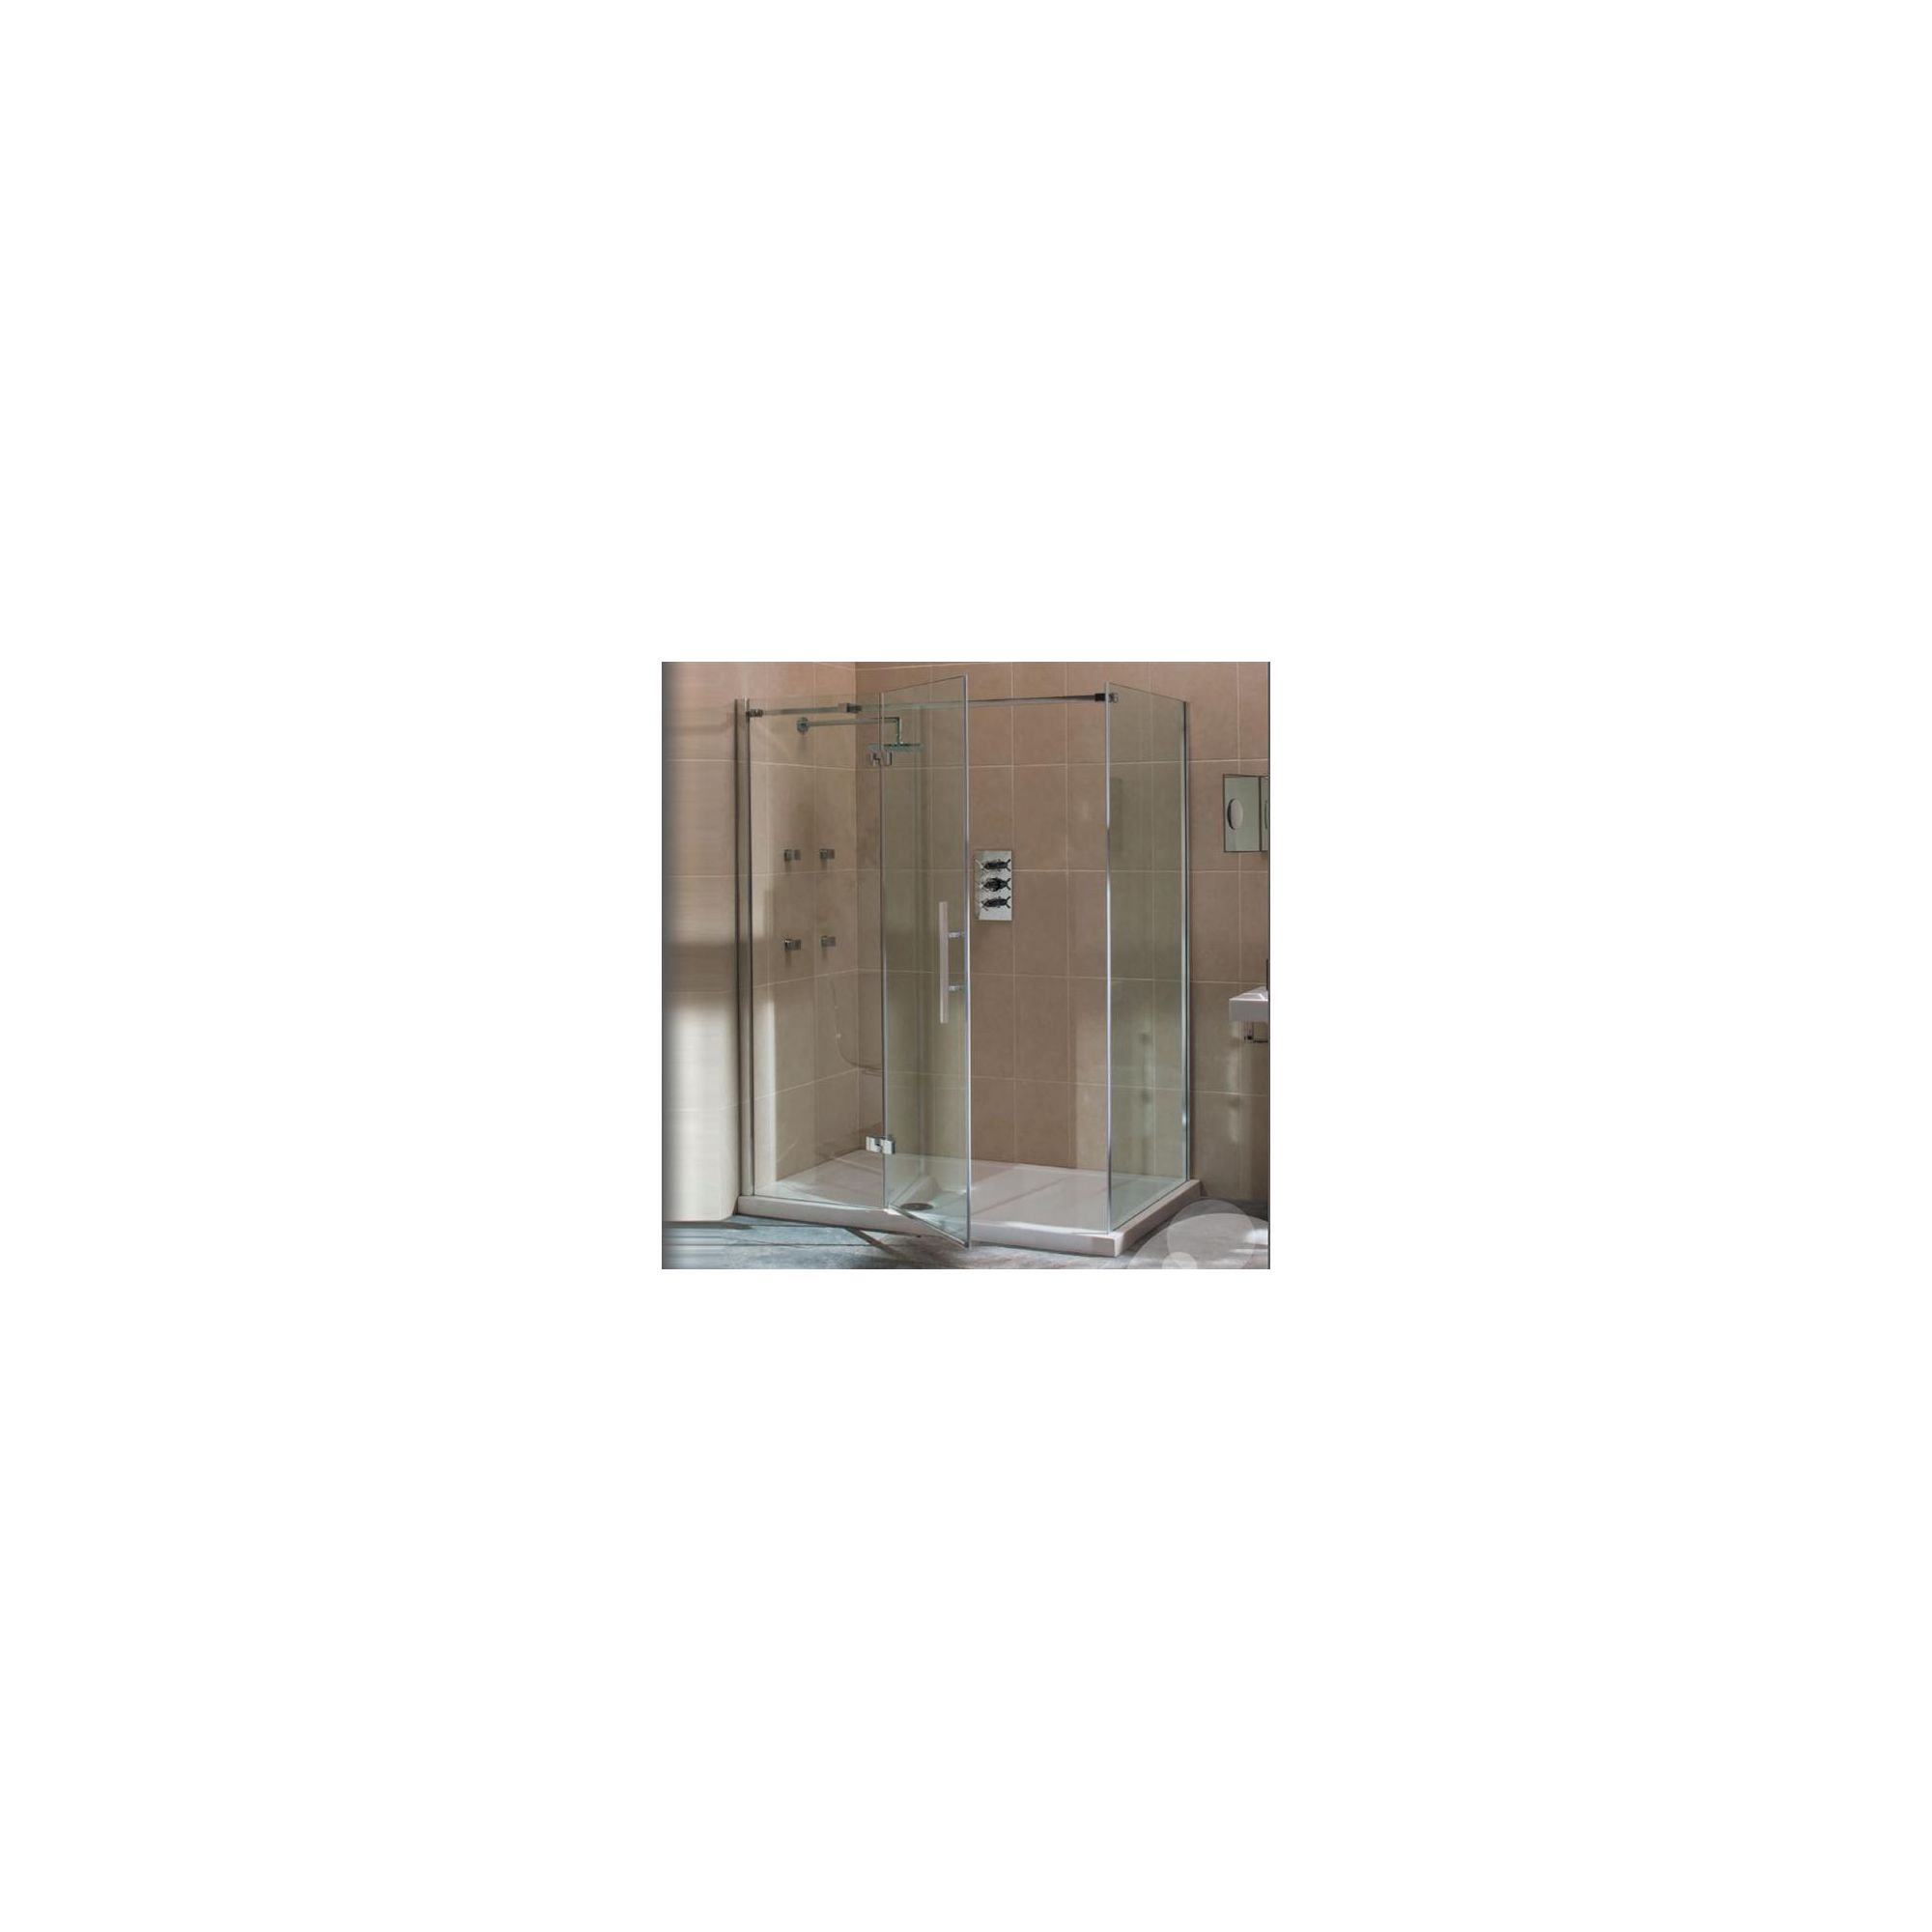 Merlyn Vivid Nine Hinged Door Shower Enclosure with Inline Panel, 1700mm x 800mm, Left Handed, Low Profile Tray, 8mm Glass at Tescos Direct